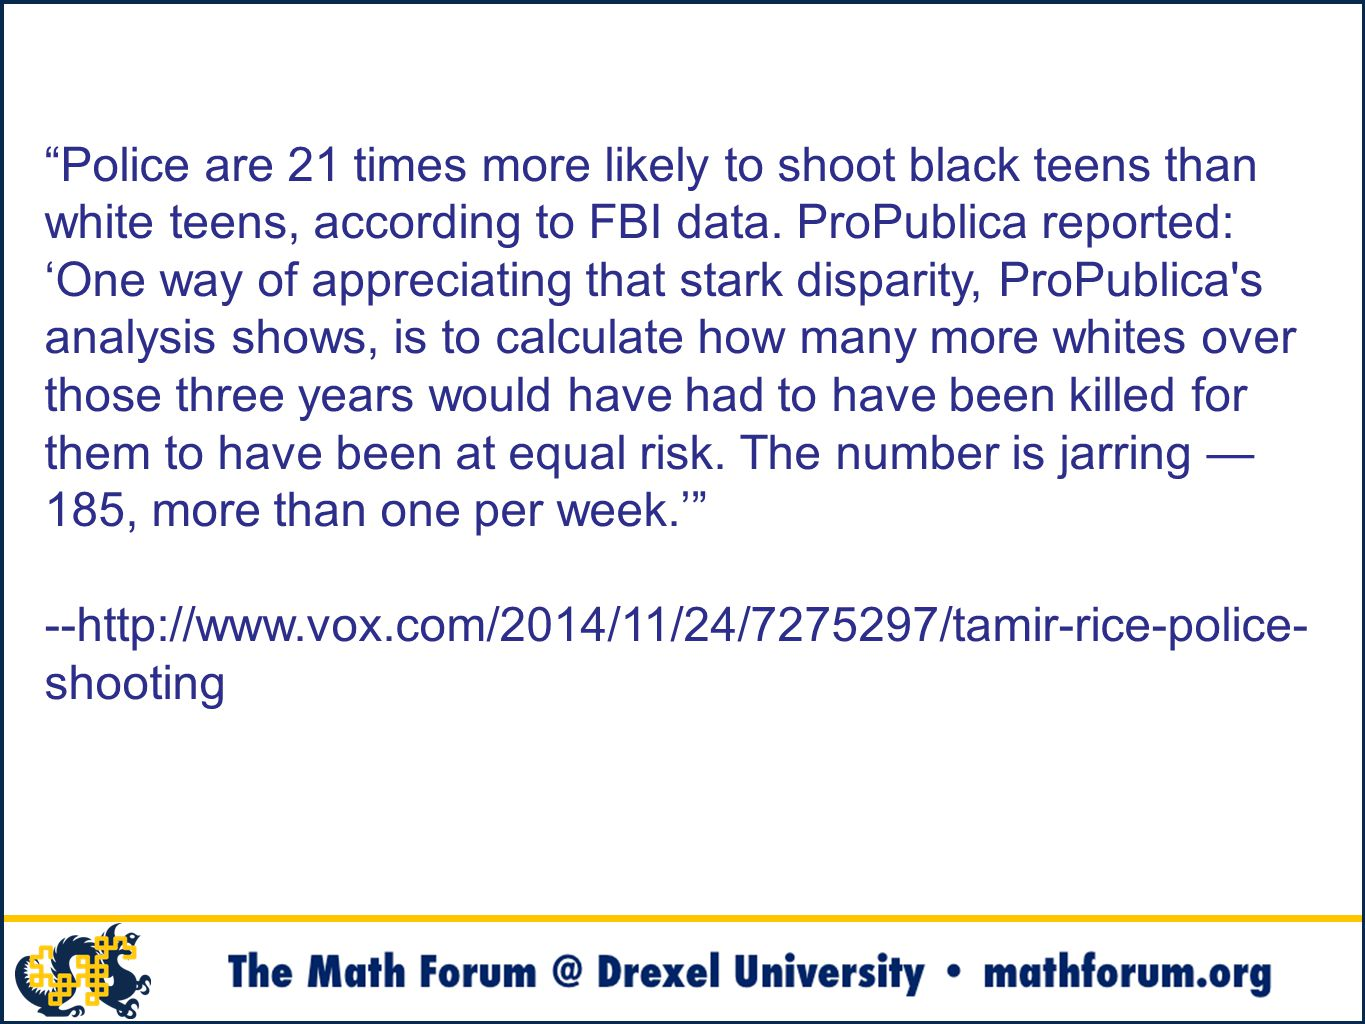 Police are 21 times more likely to shoot black teens than white teens, according to FBI data.